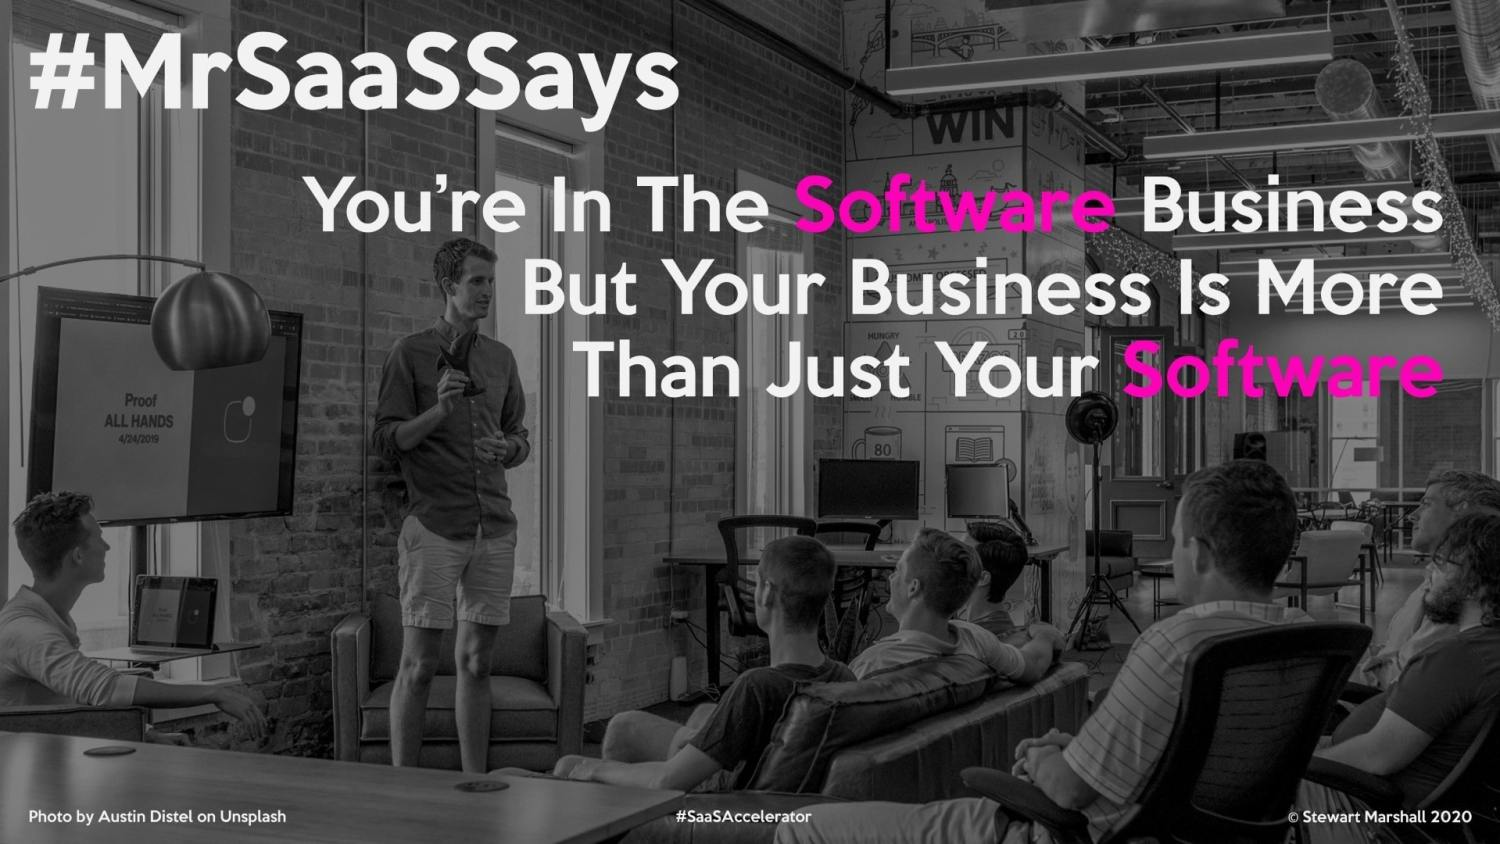 There's more to SaaS than just software